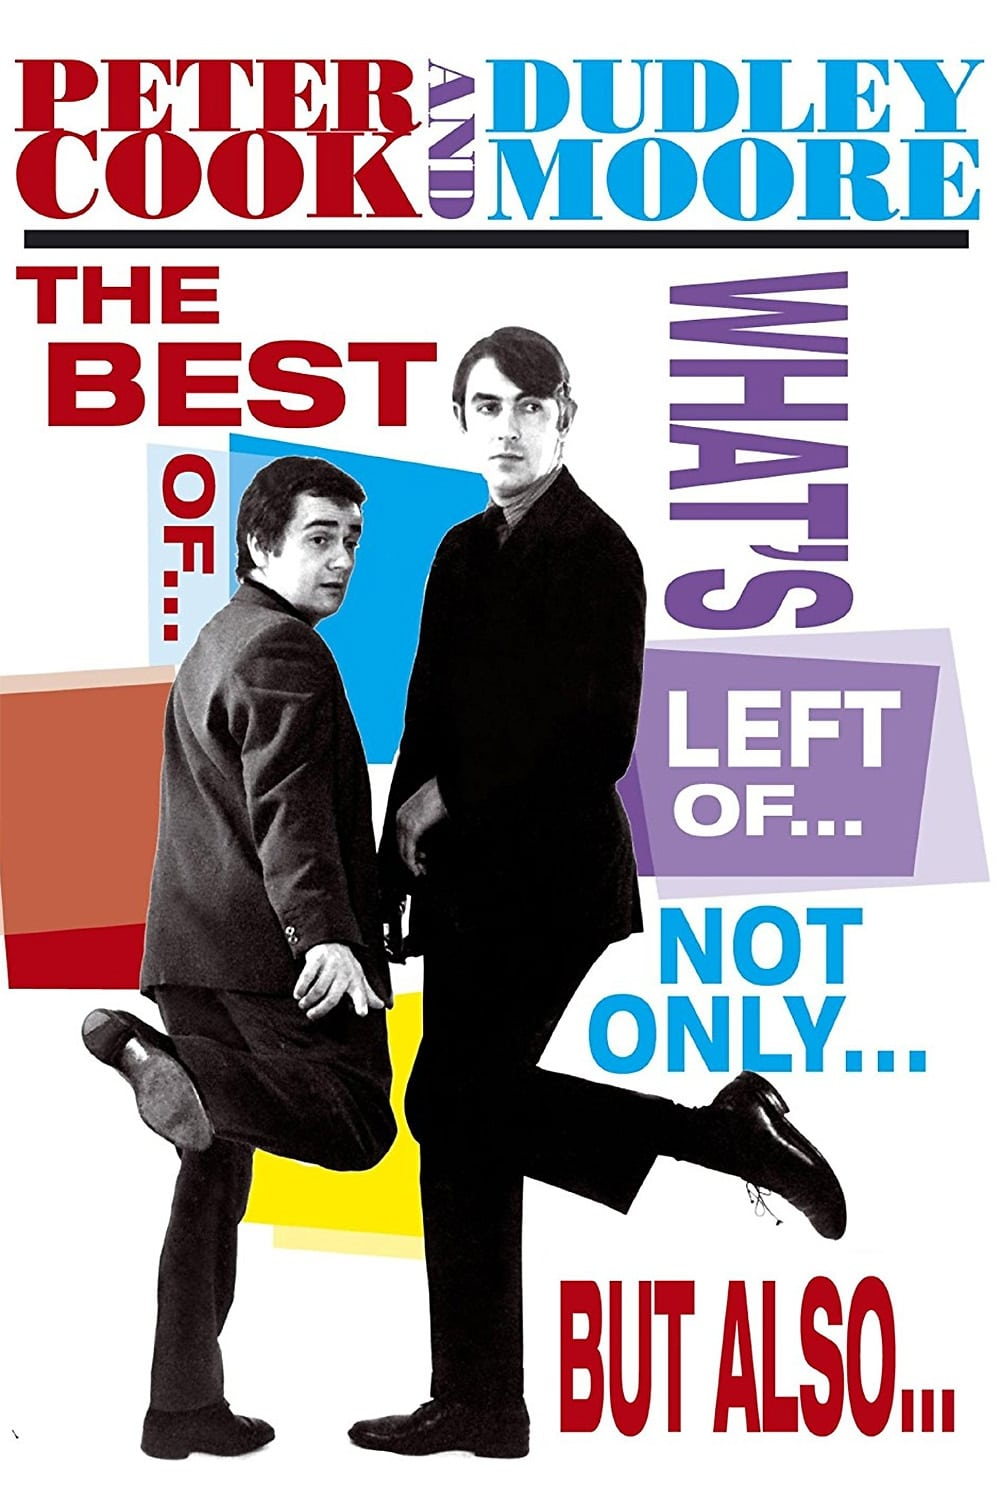 The Best of... What's Left of... Not Only... But Also (1990)